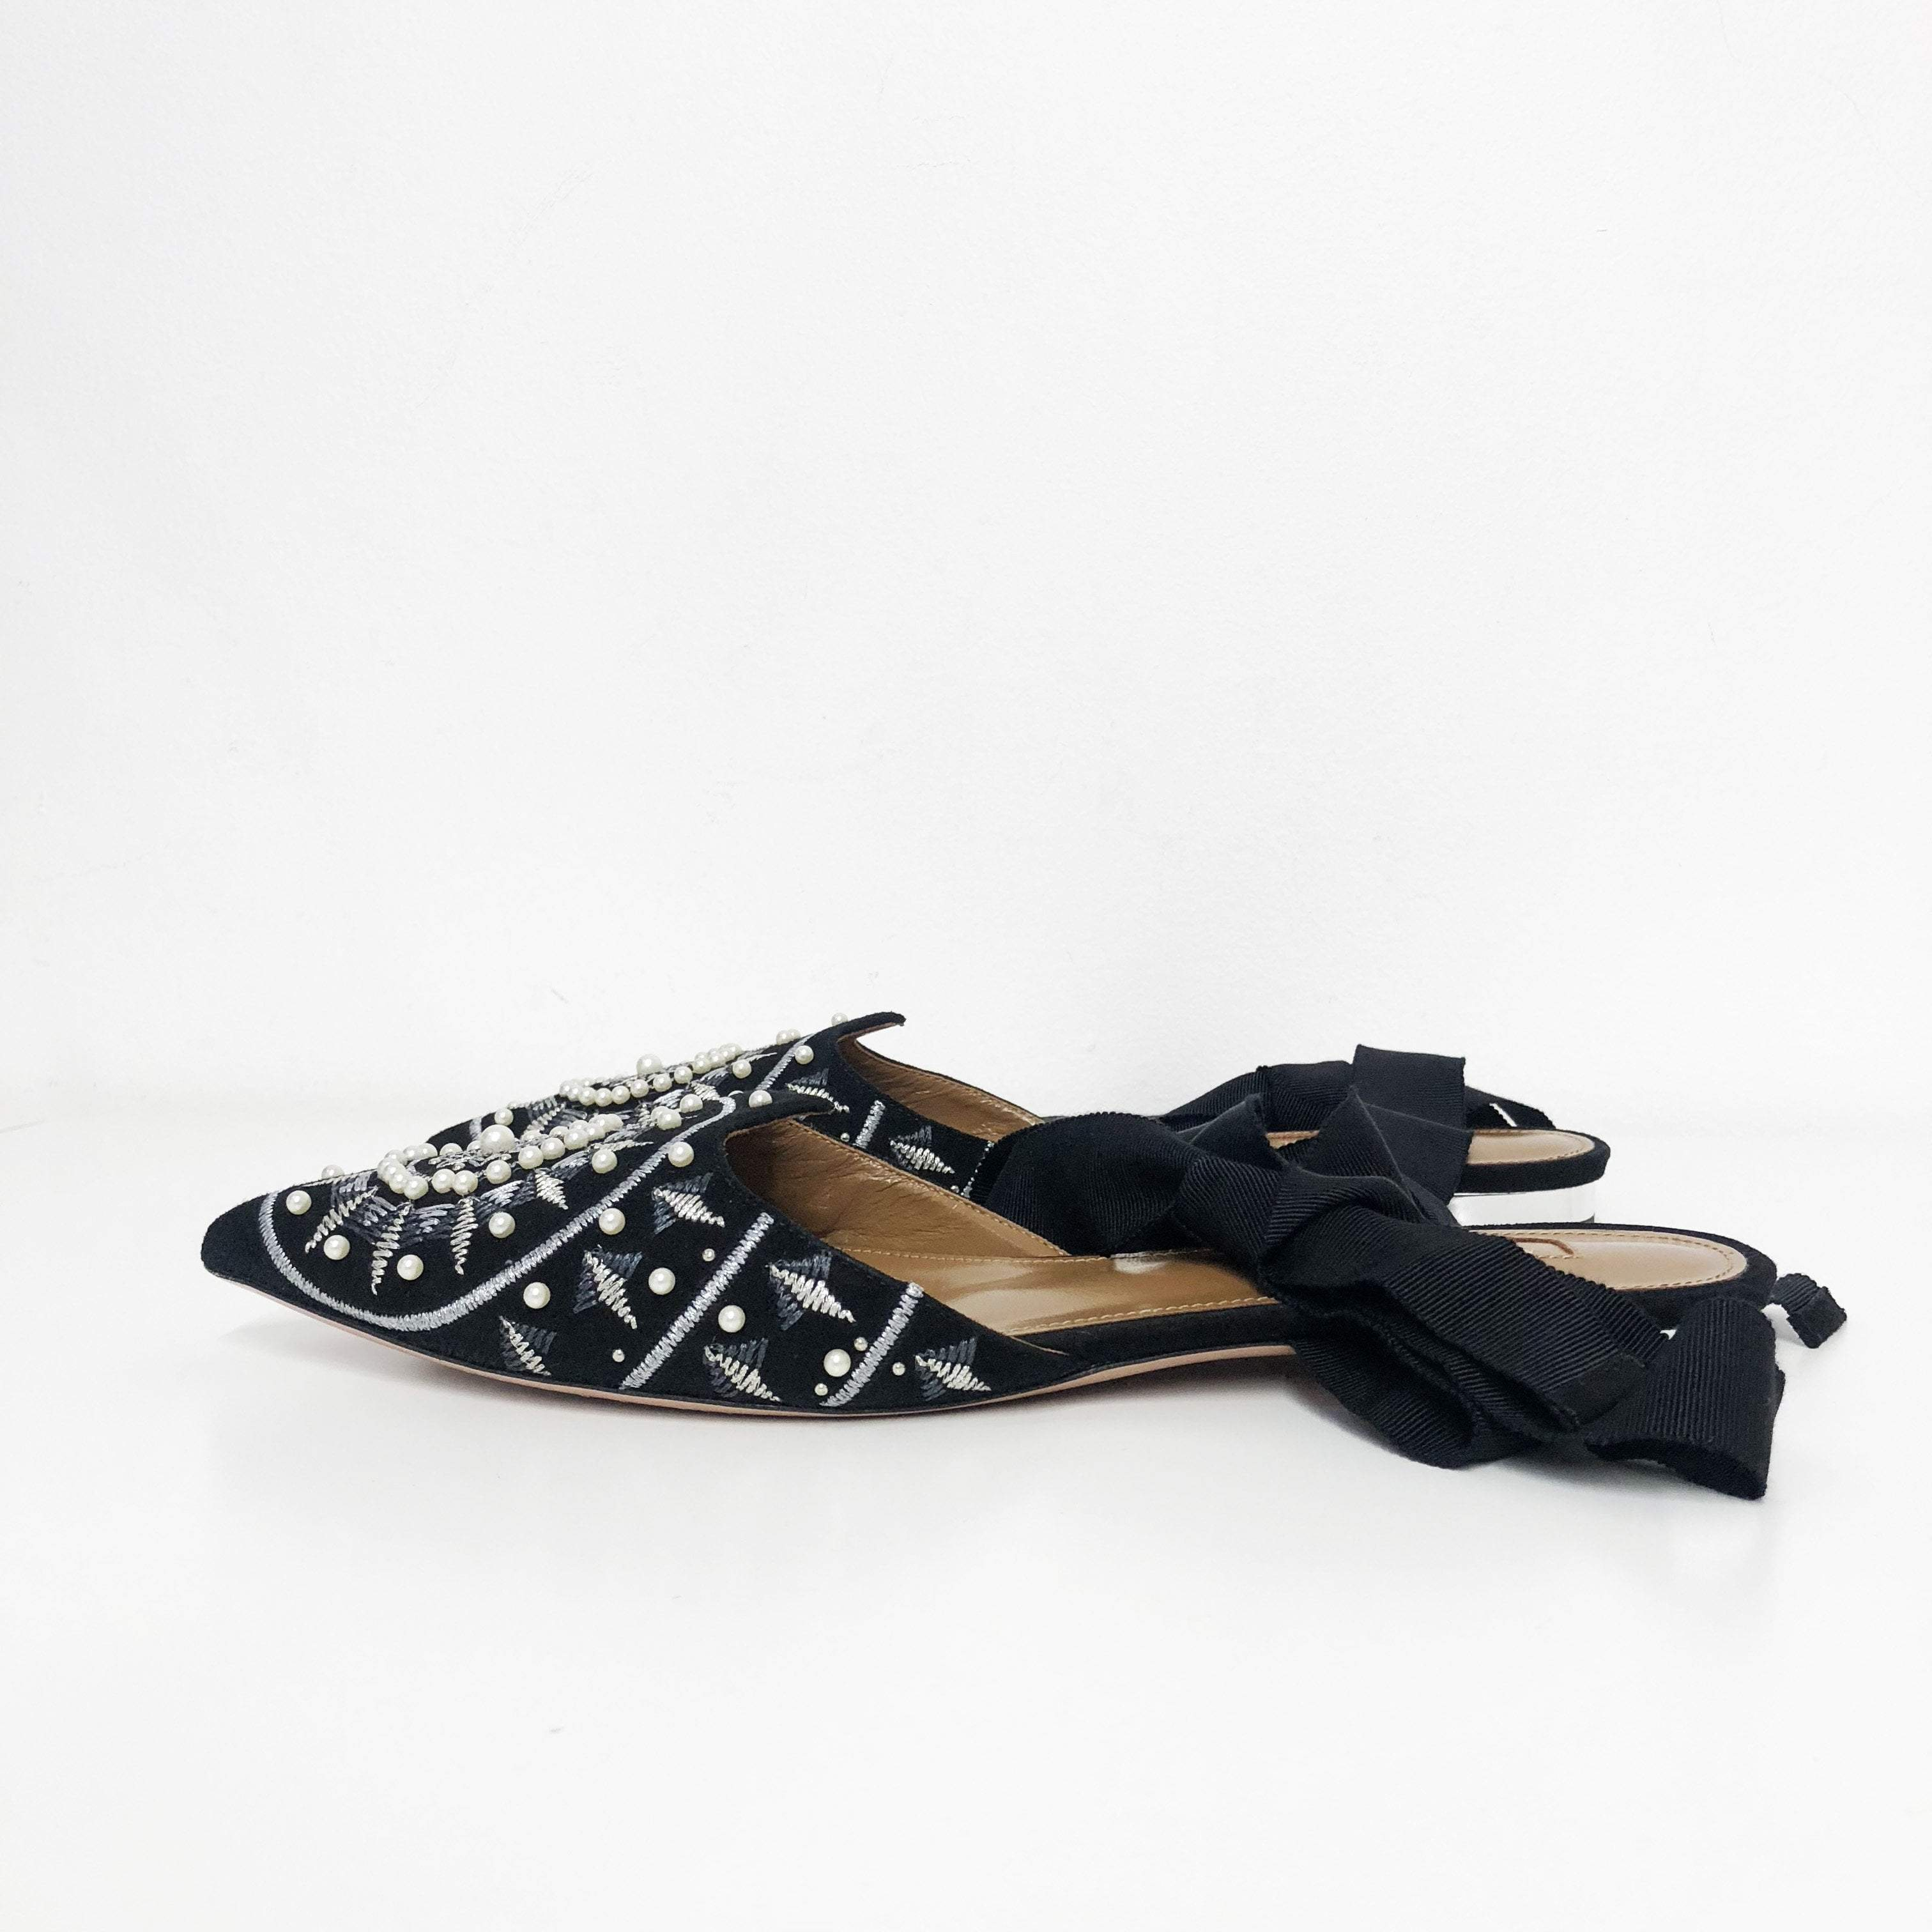 Aquazurra Black Stellar Embroidered Velvet Mules